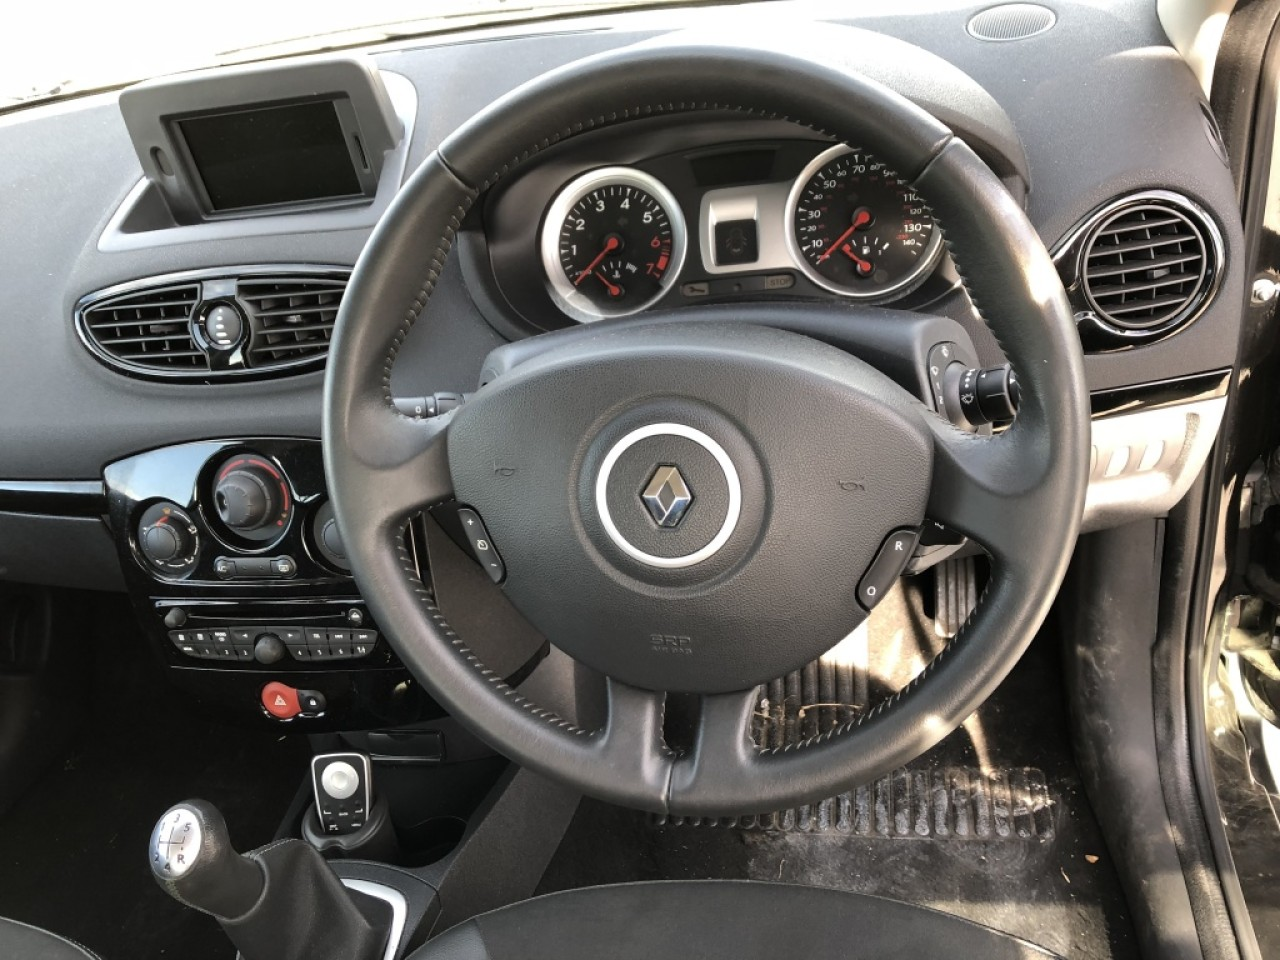 Electroventilator AC clima Renault Clio 2011 Hatchback 1.2 TCe Tom Tom